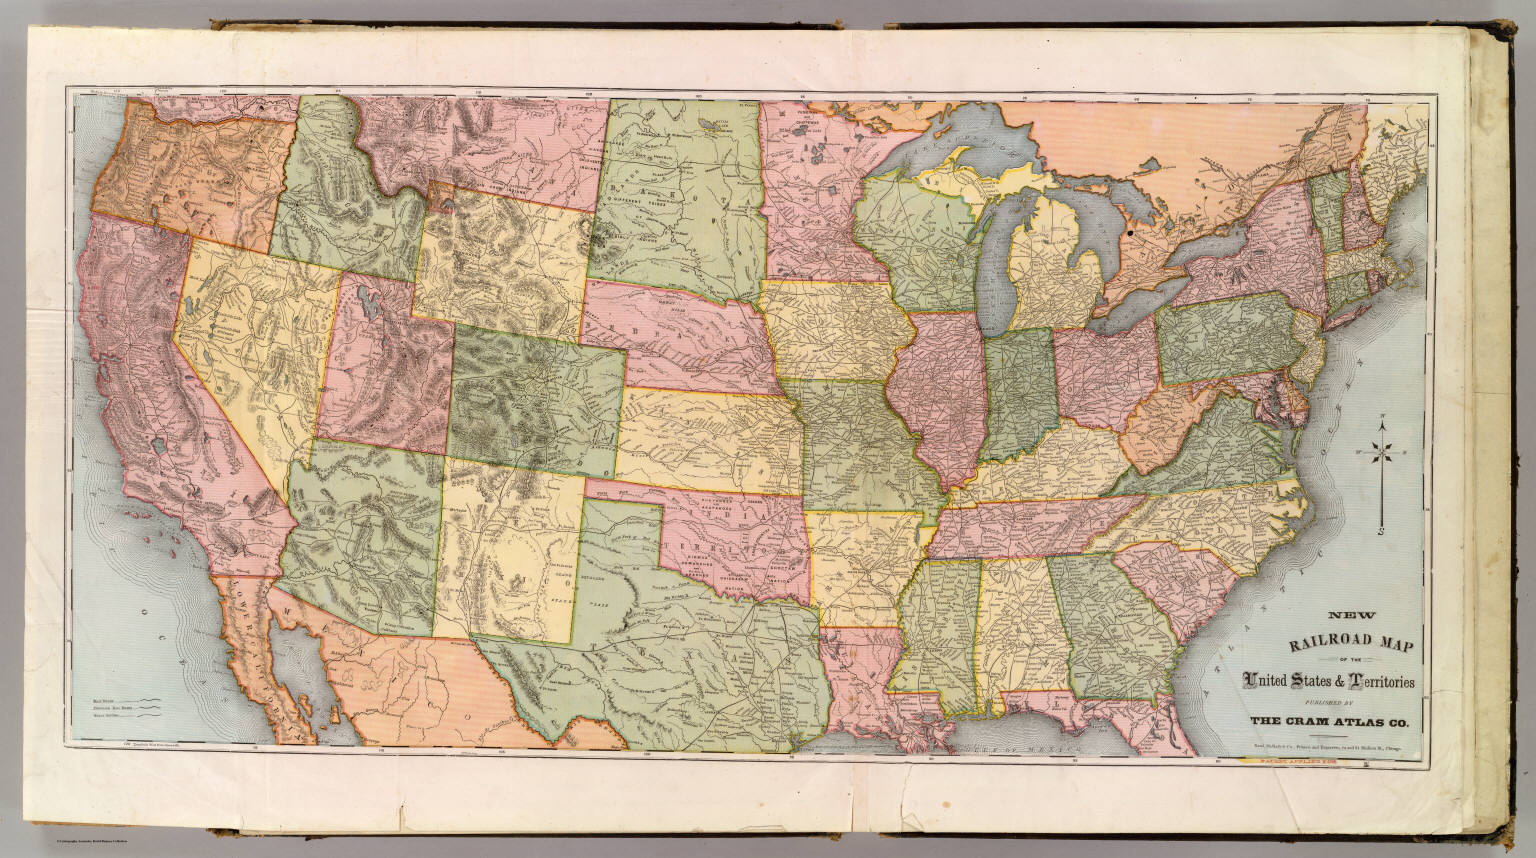 New Railroad Map Of The United States Territories David - Us 1880 map